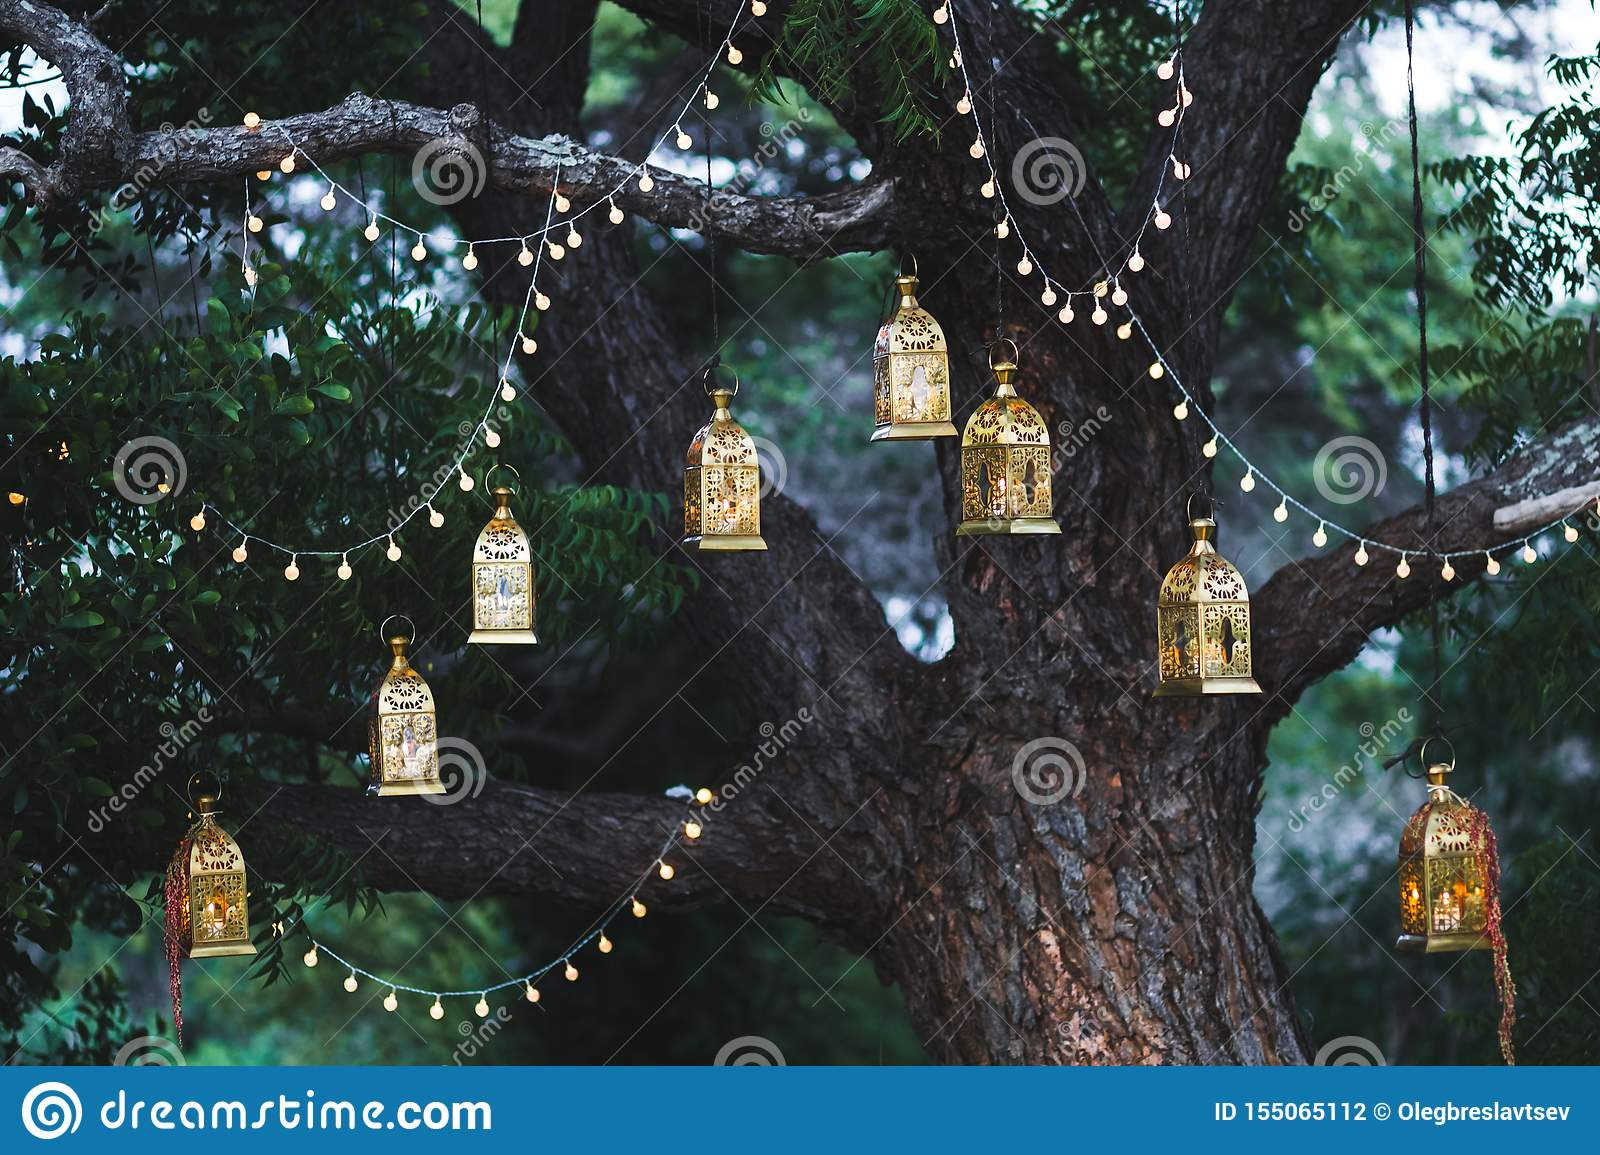 Night wedding ceremony with vintage lamps on tree